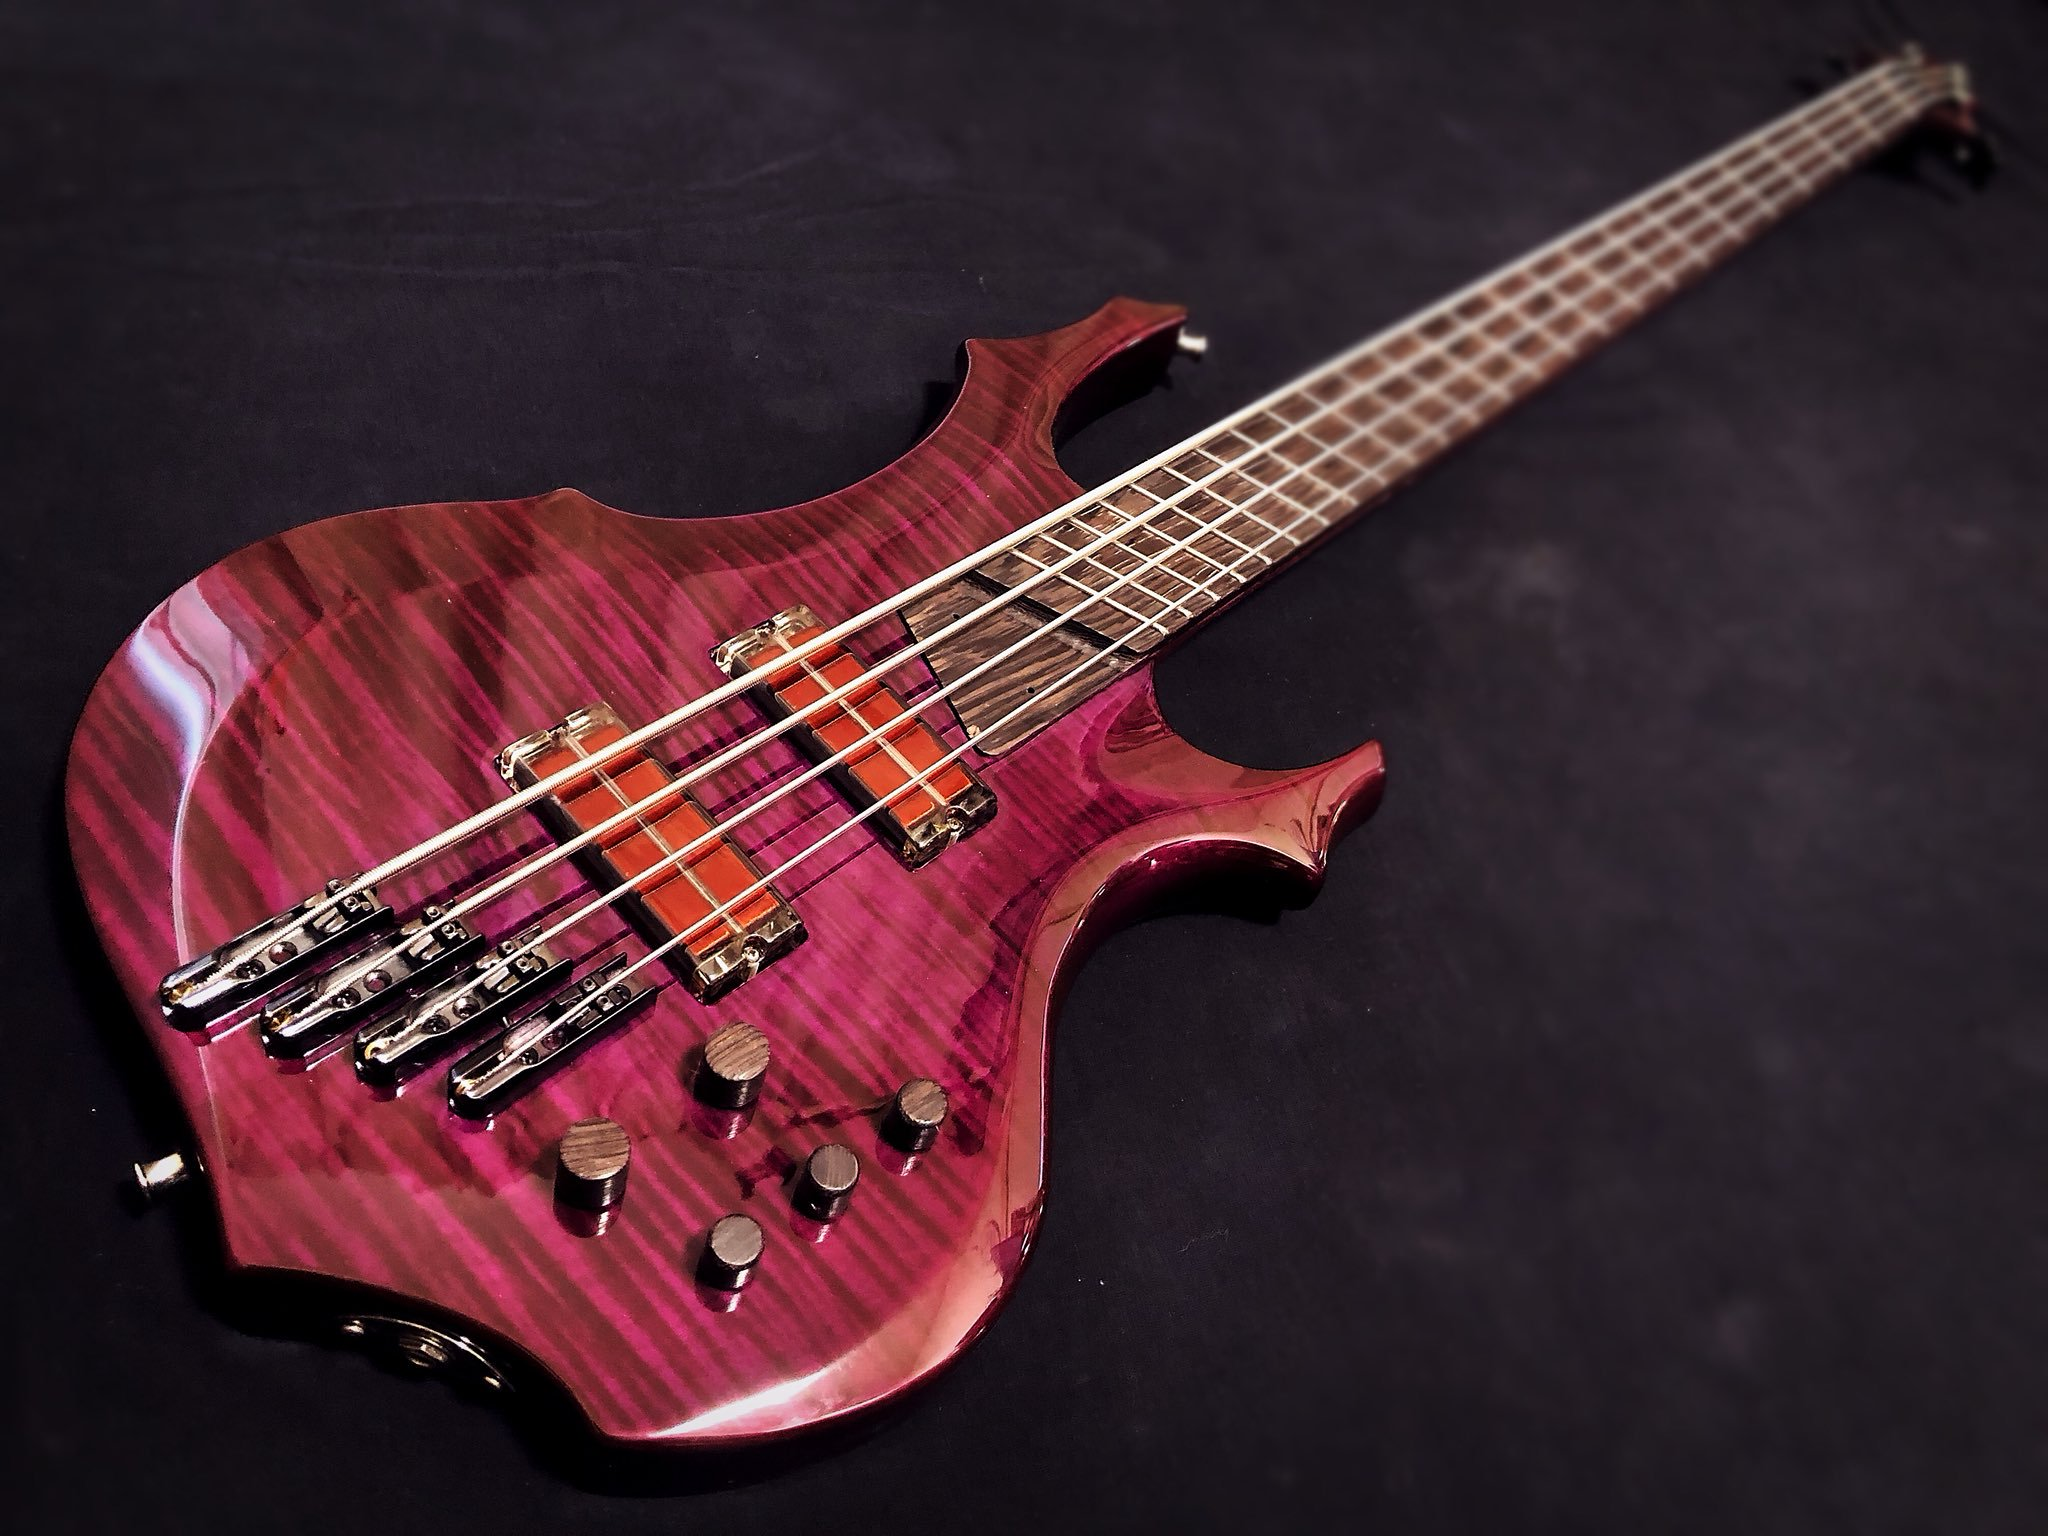 Awesome bass made by Go Takigawa equipped with q-tuner pickups